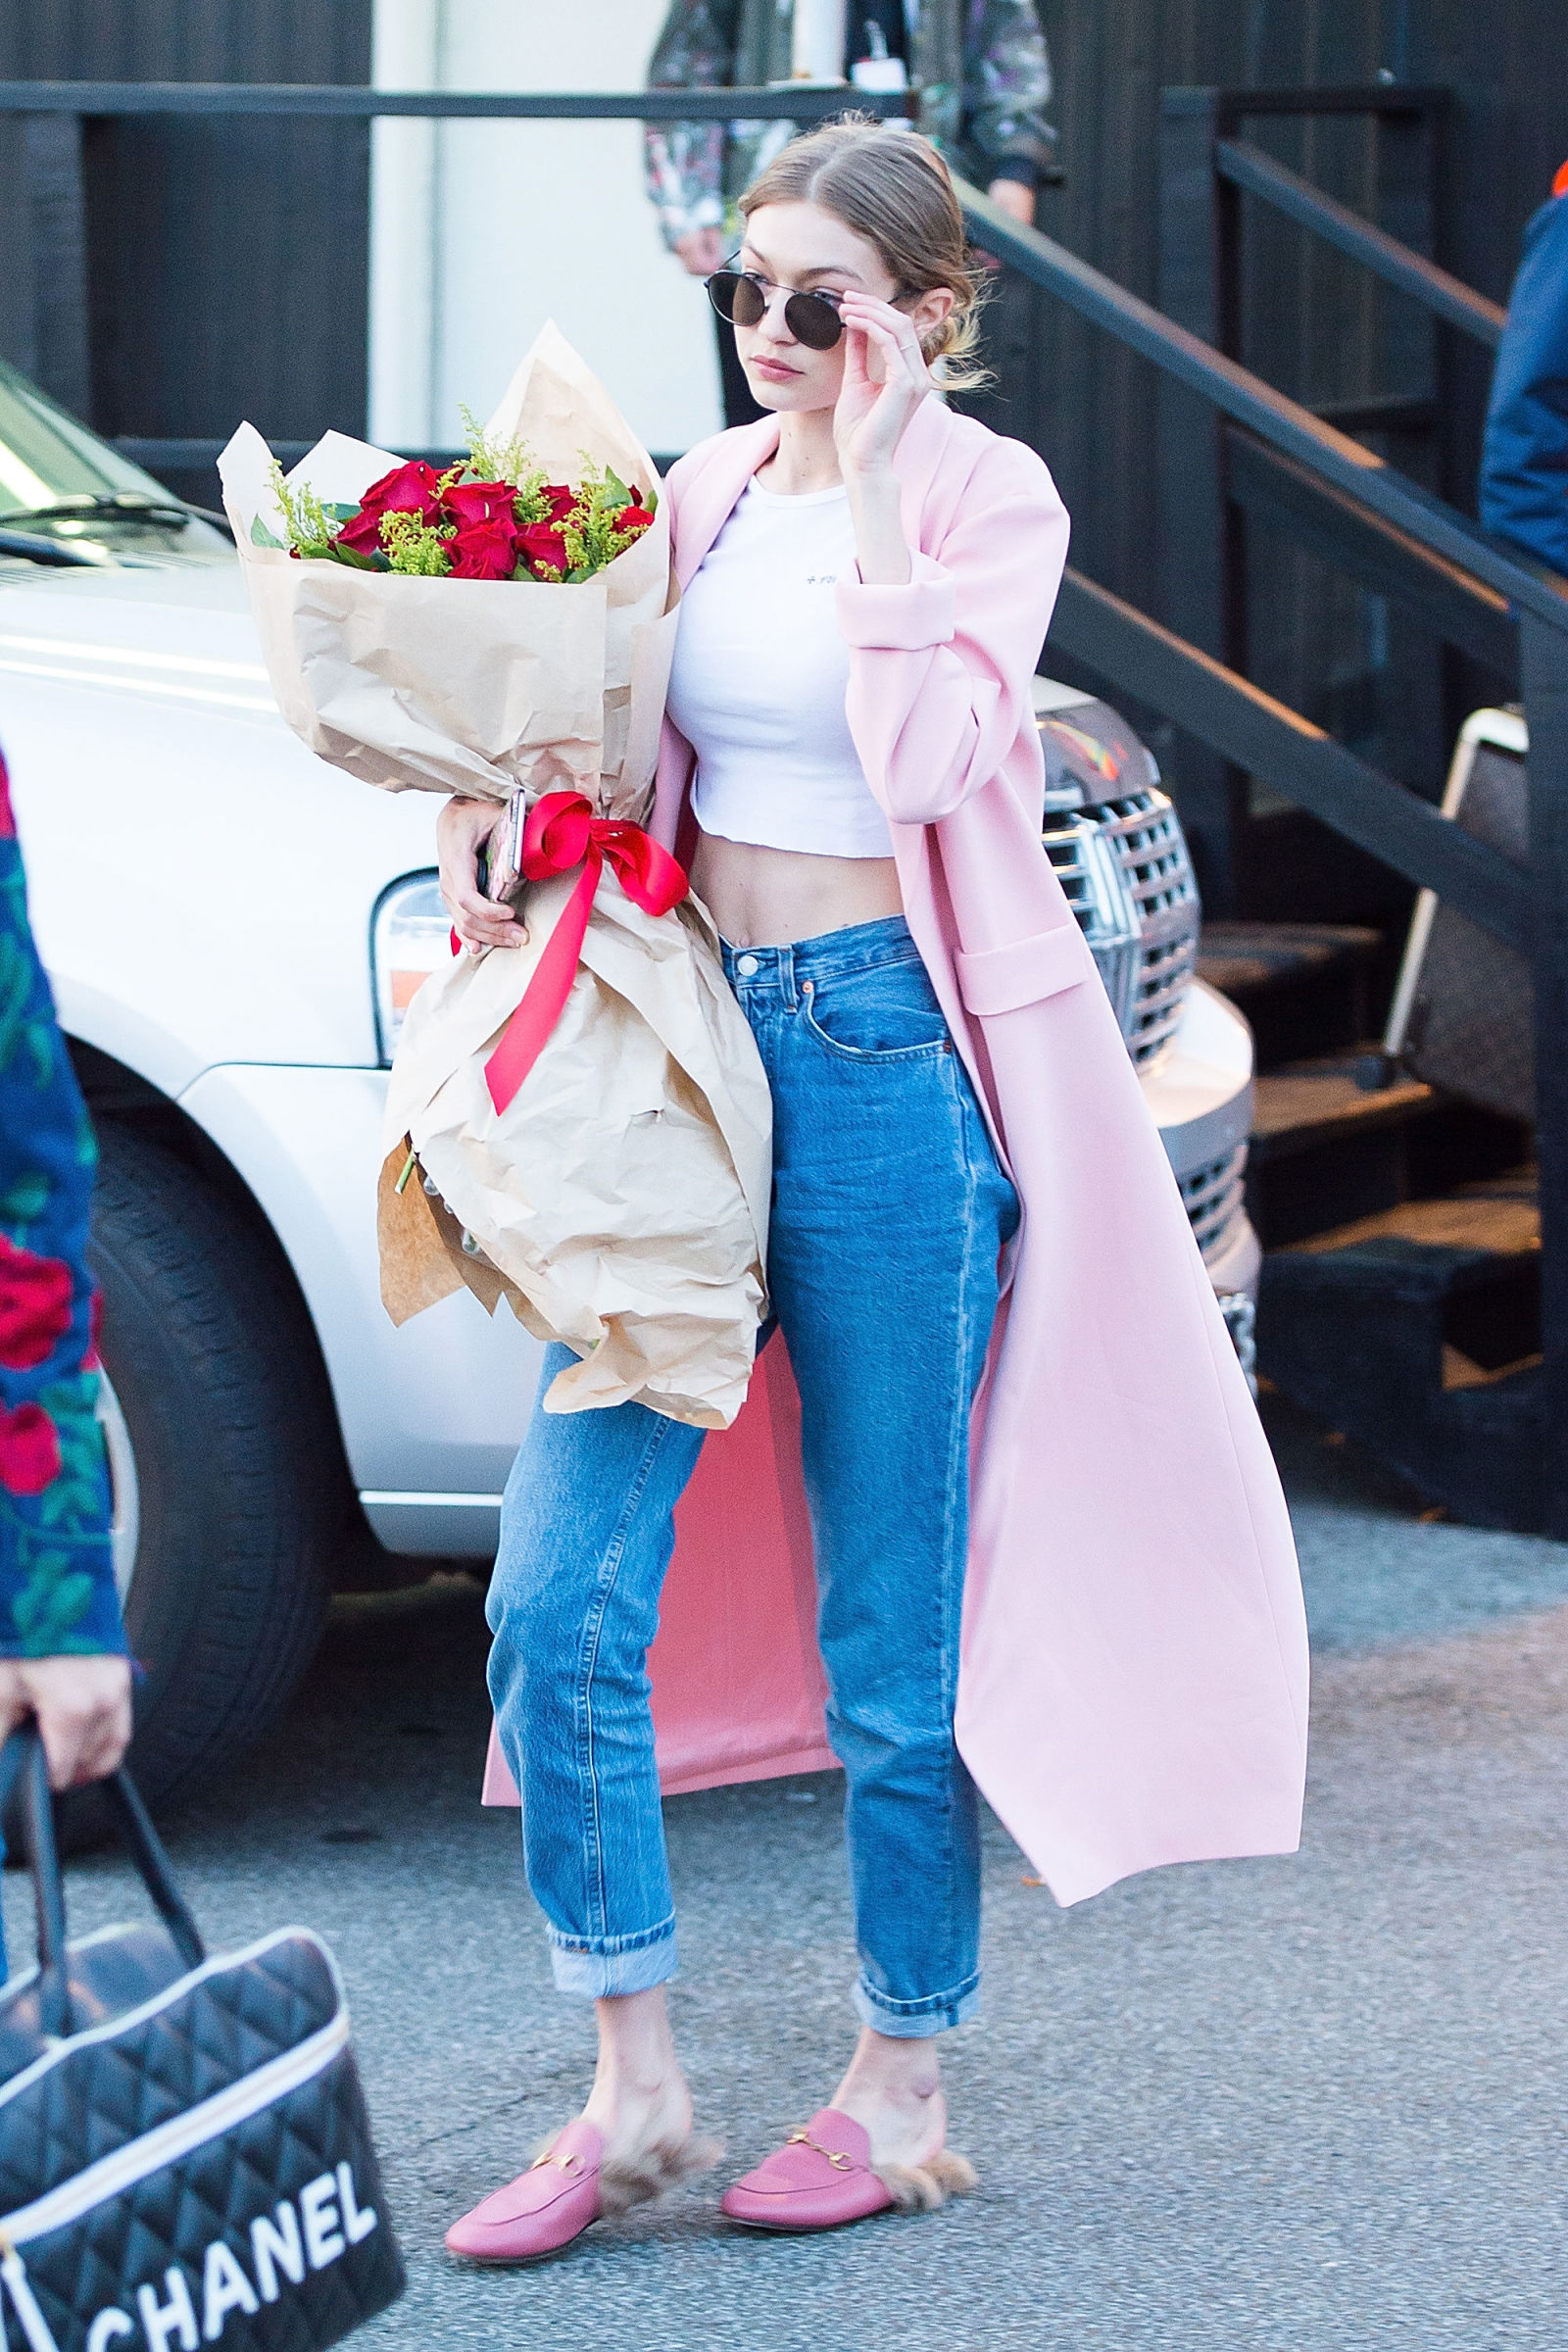 Gigi Hadid carrying one bouquet of flowers out in New York City.  / GETTY